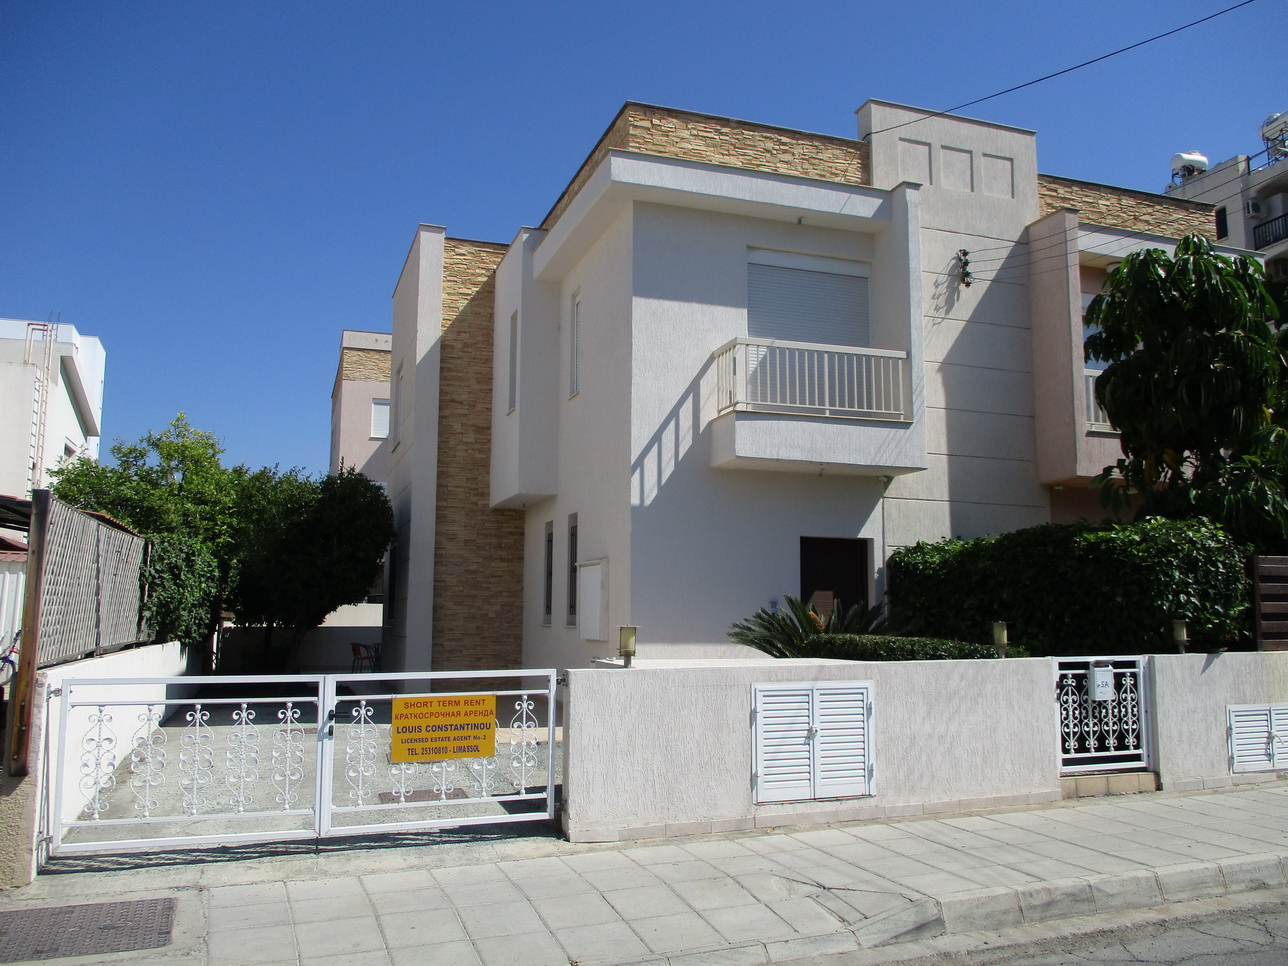 3 Bedroom Semi-Detached House for rent in Potamos Germasogeias ... on log cabin plans 3 bedroom, duplex plans 3 bedroom, maisonette plans 3 bedroom,